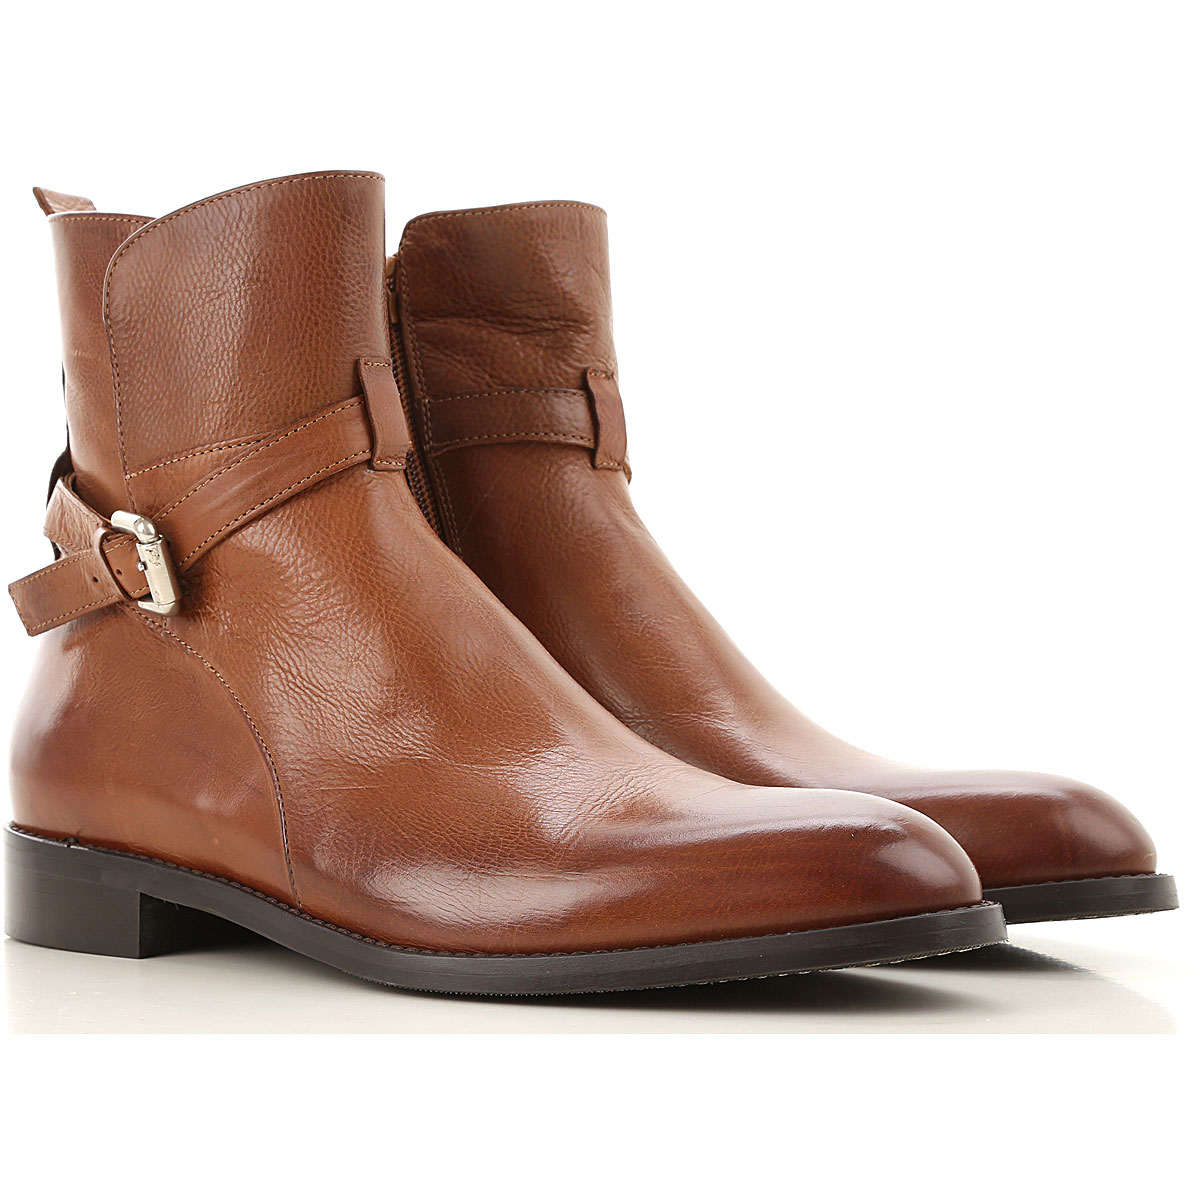 Guglielmo Rotta Boots for Women, Booties On Sale, Leather, Leather, 2019, 10 6 7 8 9